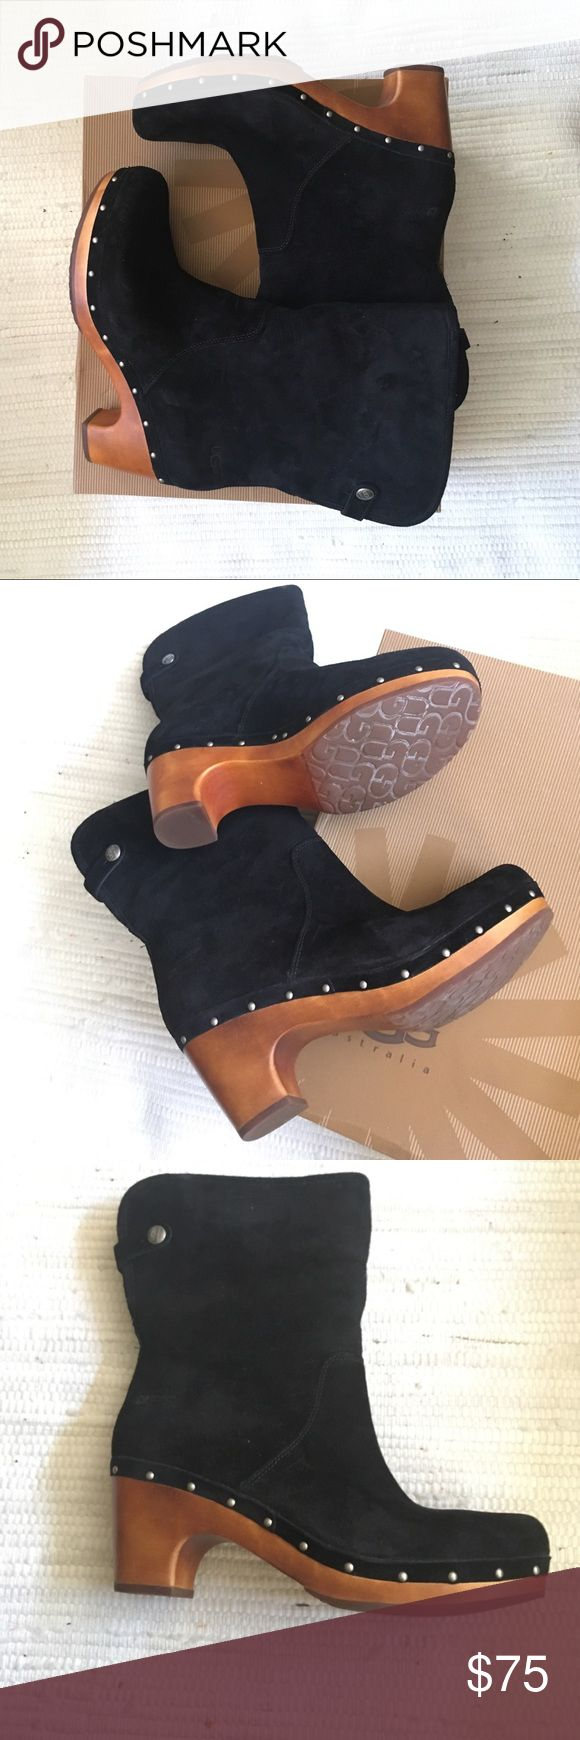 Ugg boots Black suede, great solid heel. Shearling inside and you can turn down the boots and snap to expose the shearling if you choose. Can't go wrong with Uggs! Only worn a few times. Will ship in original box. UGG Shoes Ankle Boots & Booties